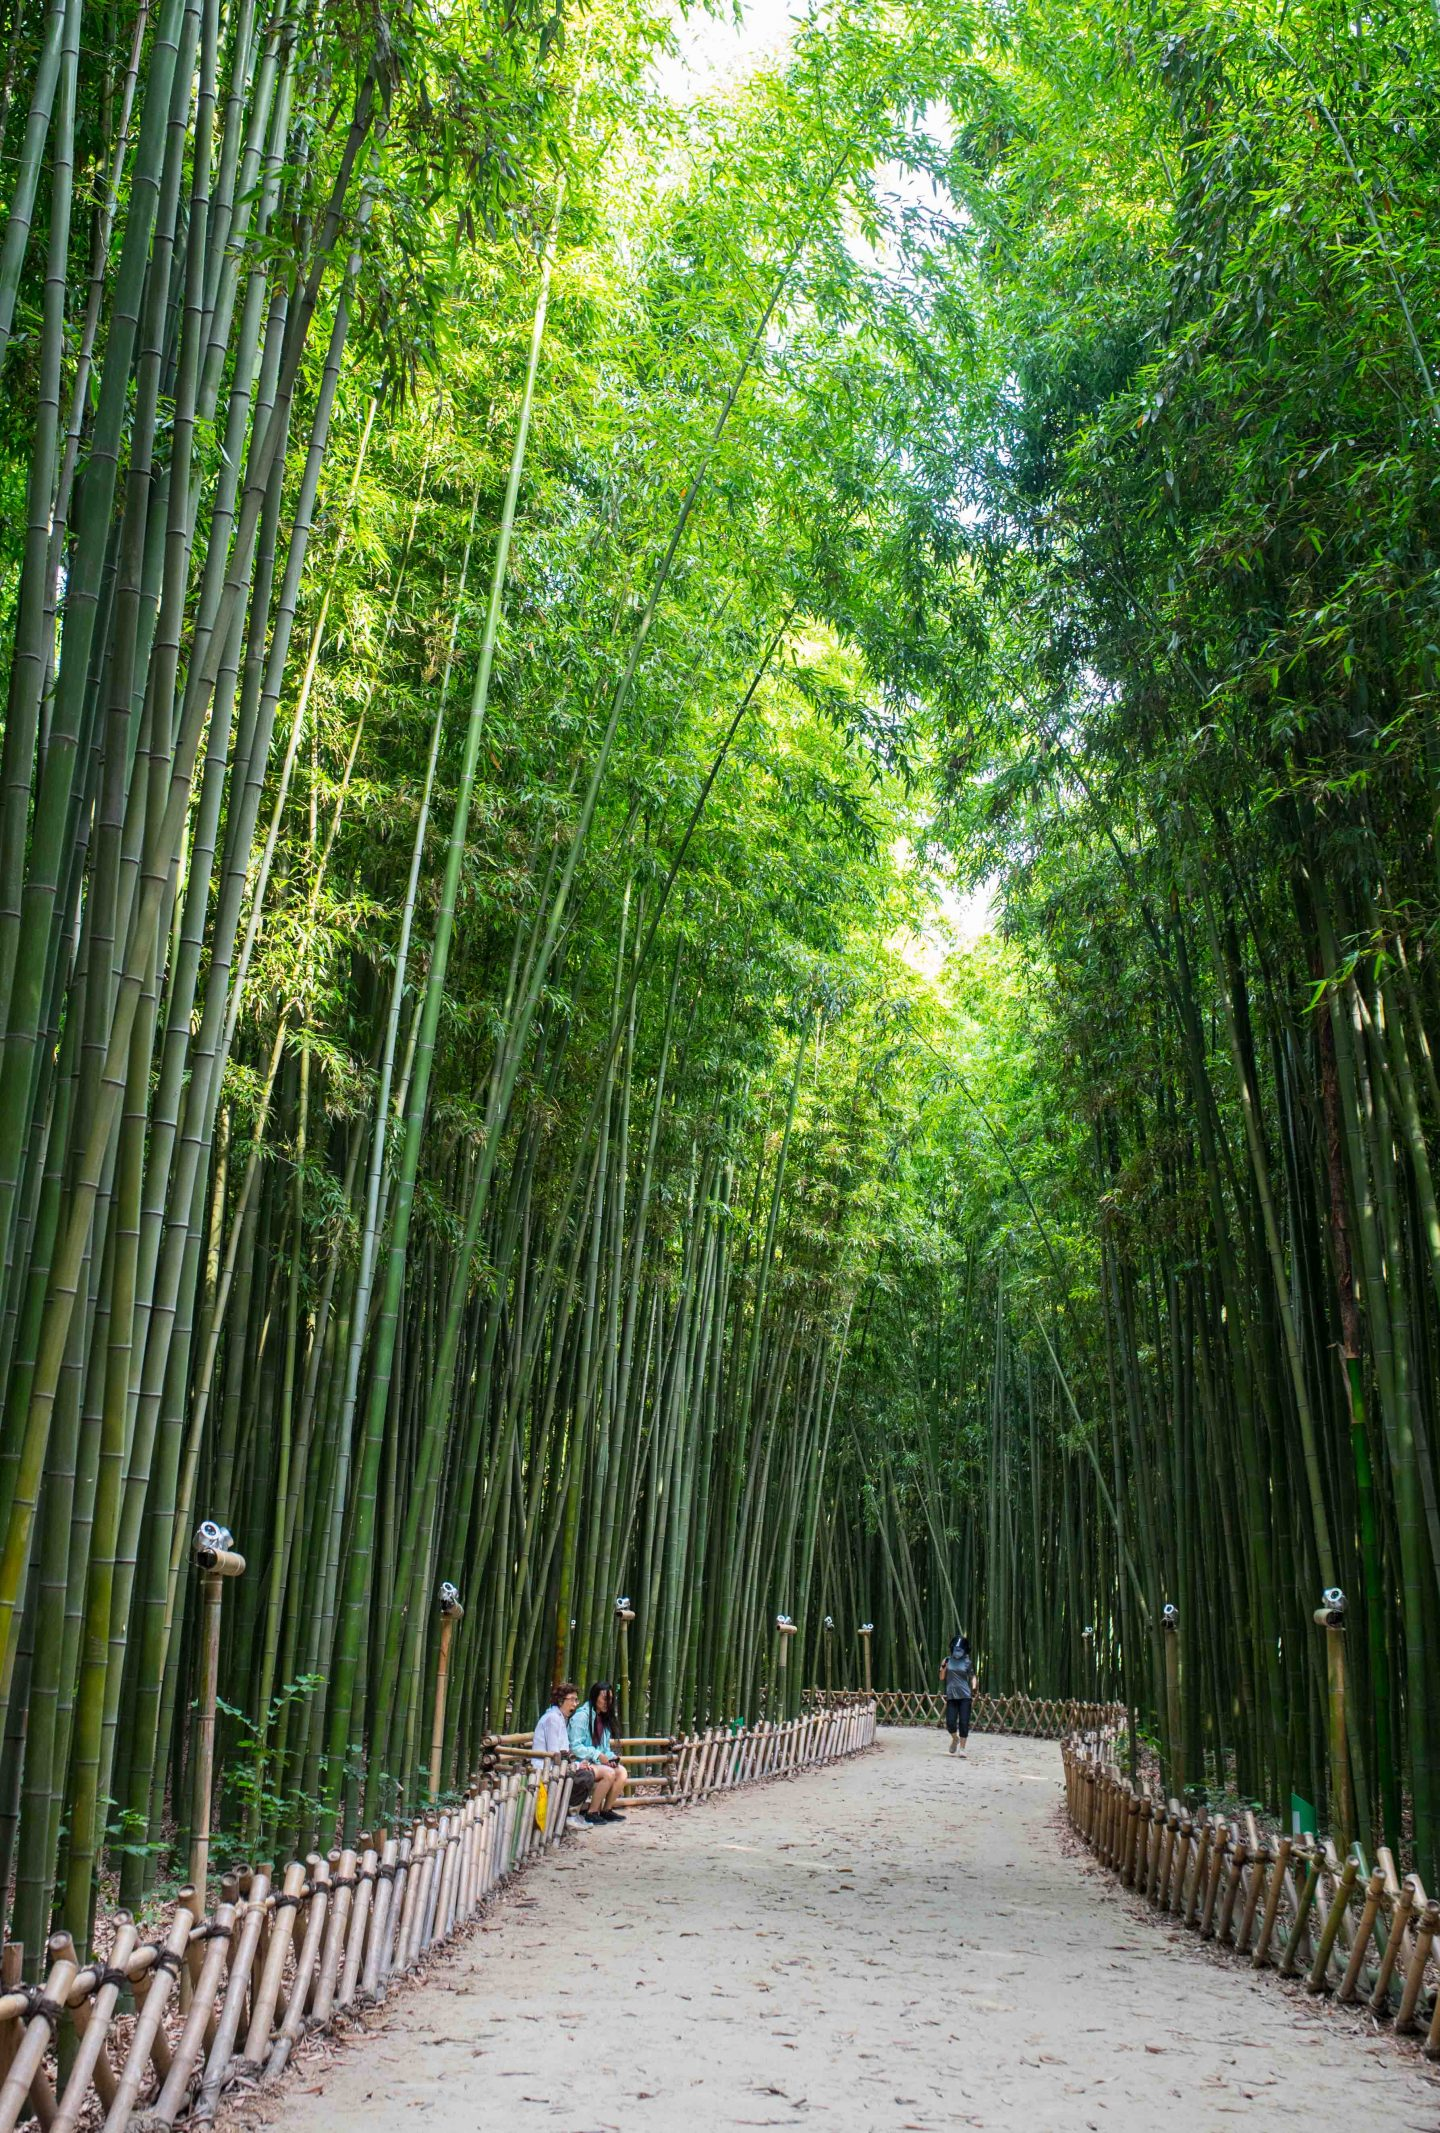 Taehwa River Bamboo Forest